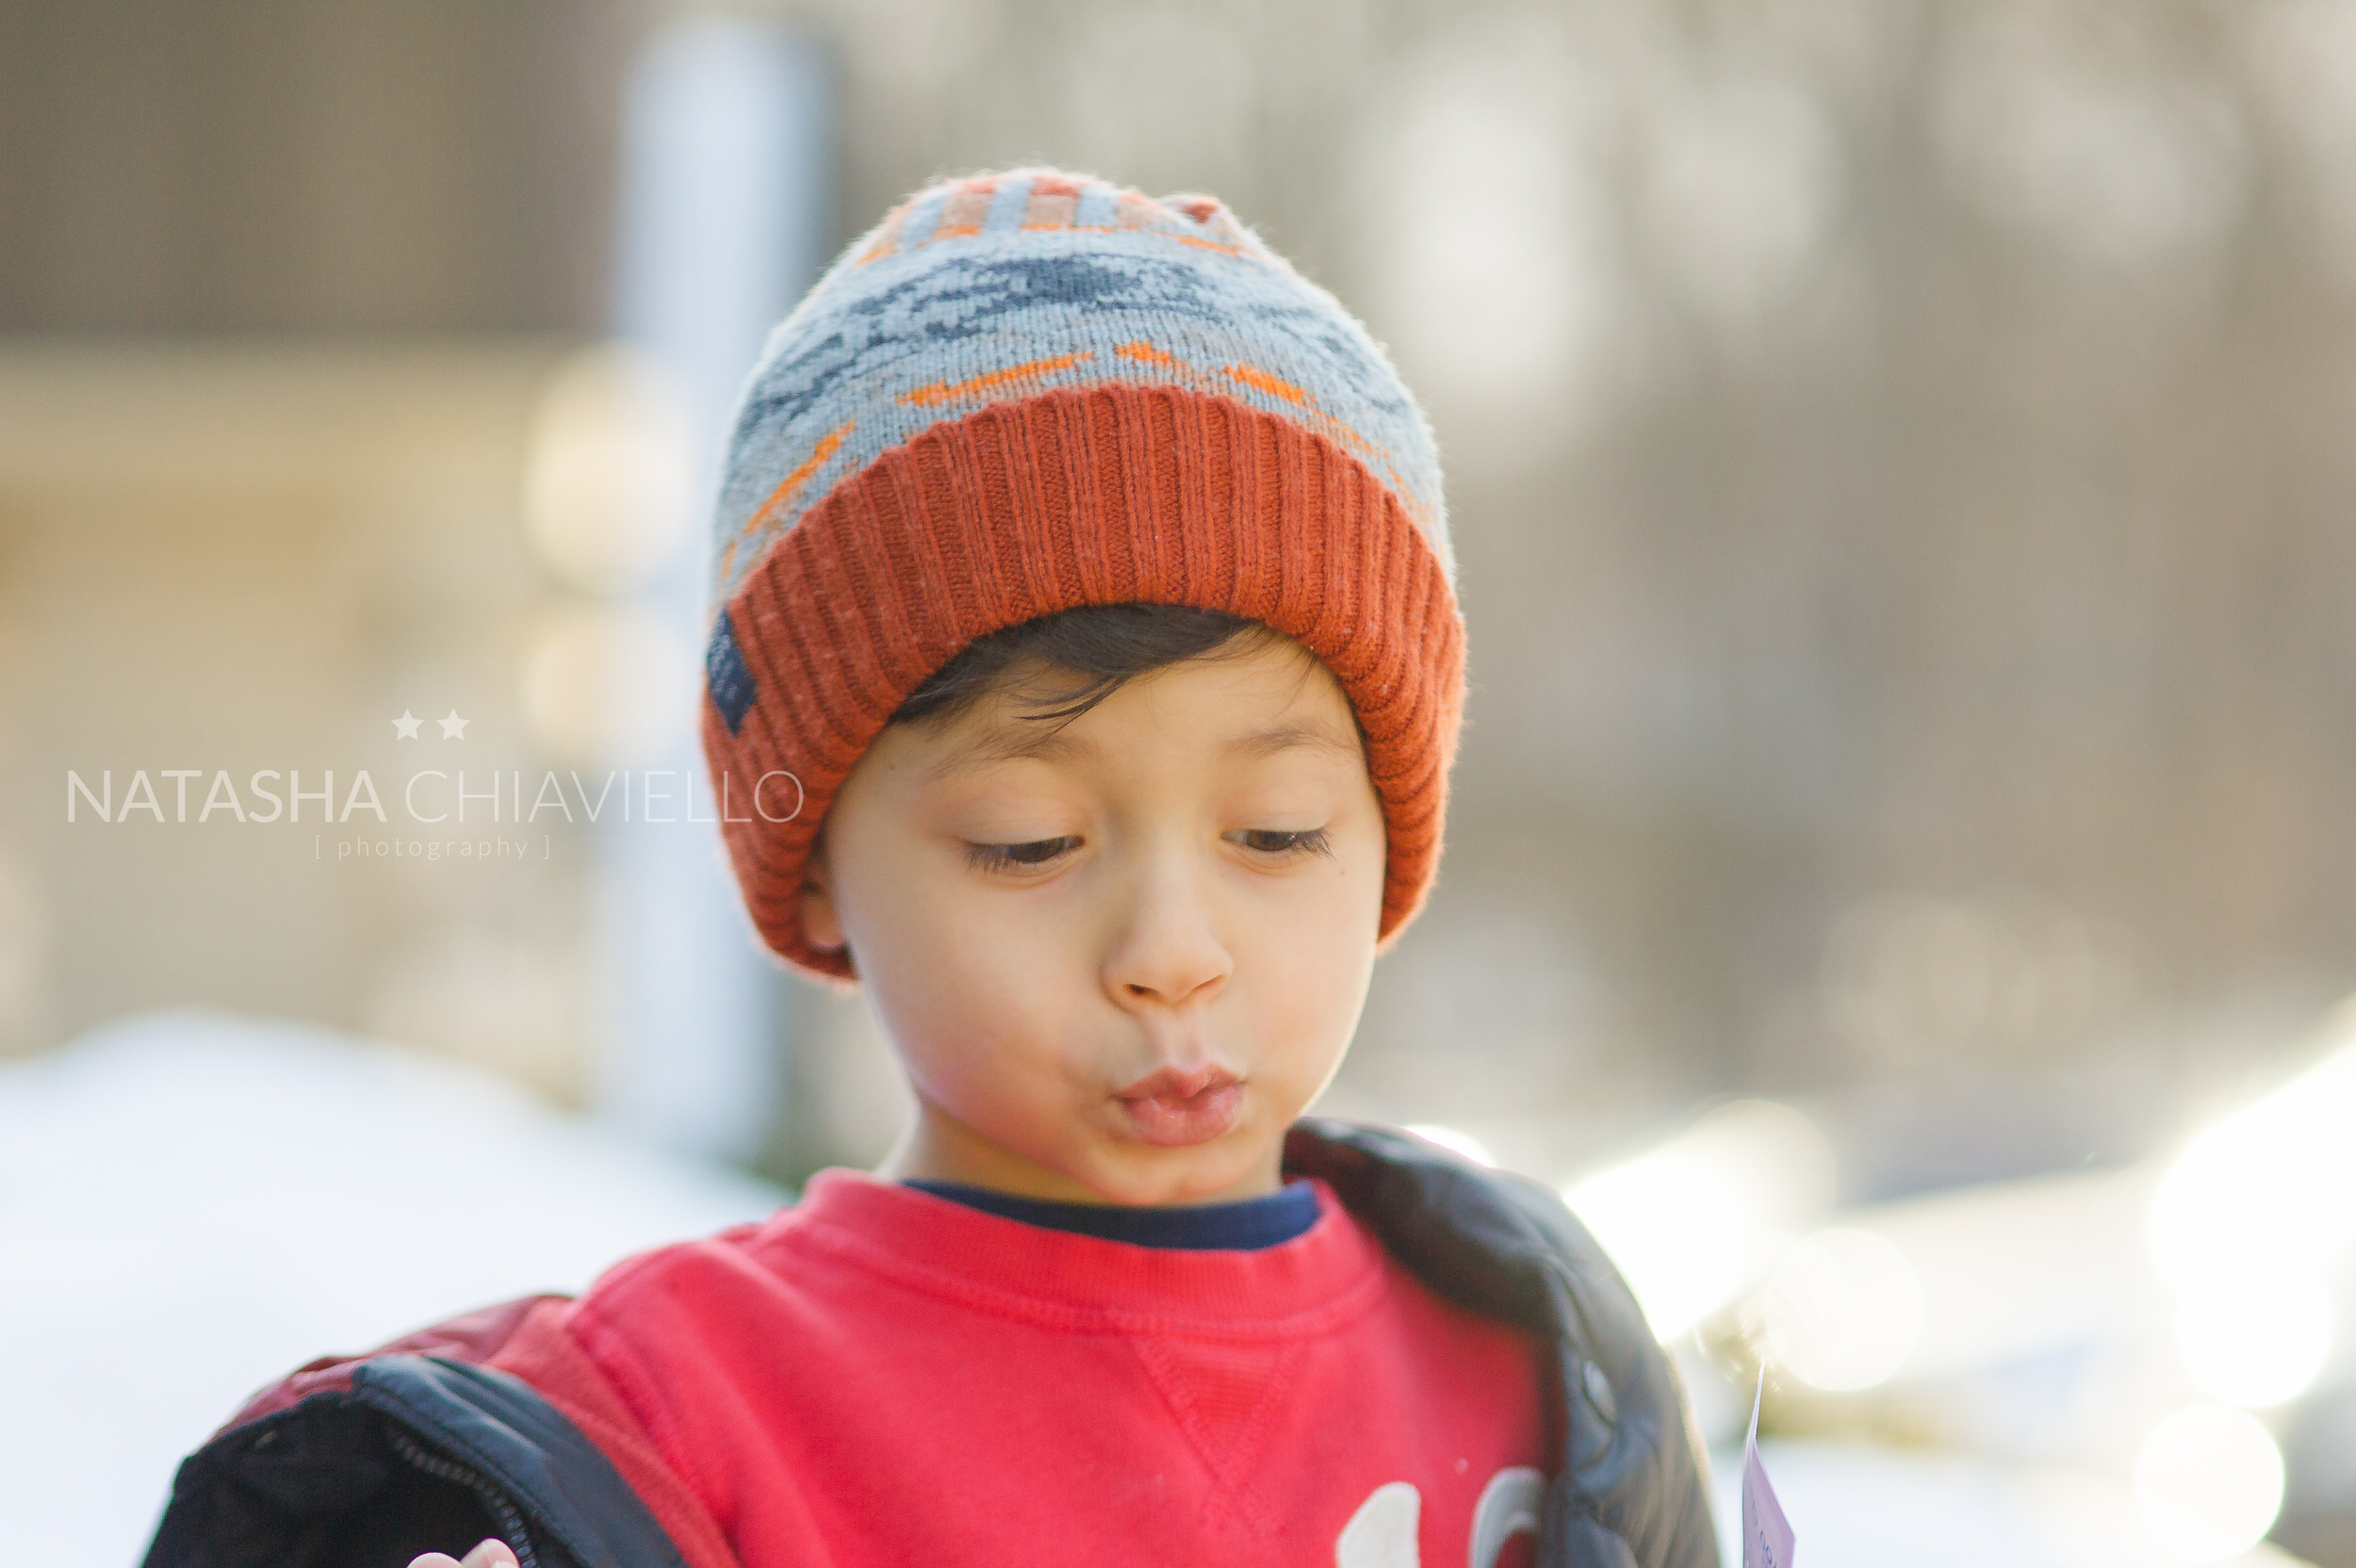 bergen county child photographer